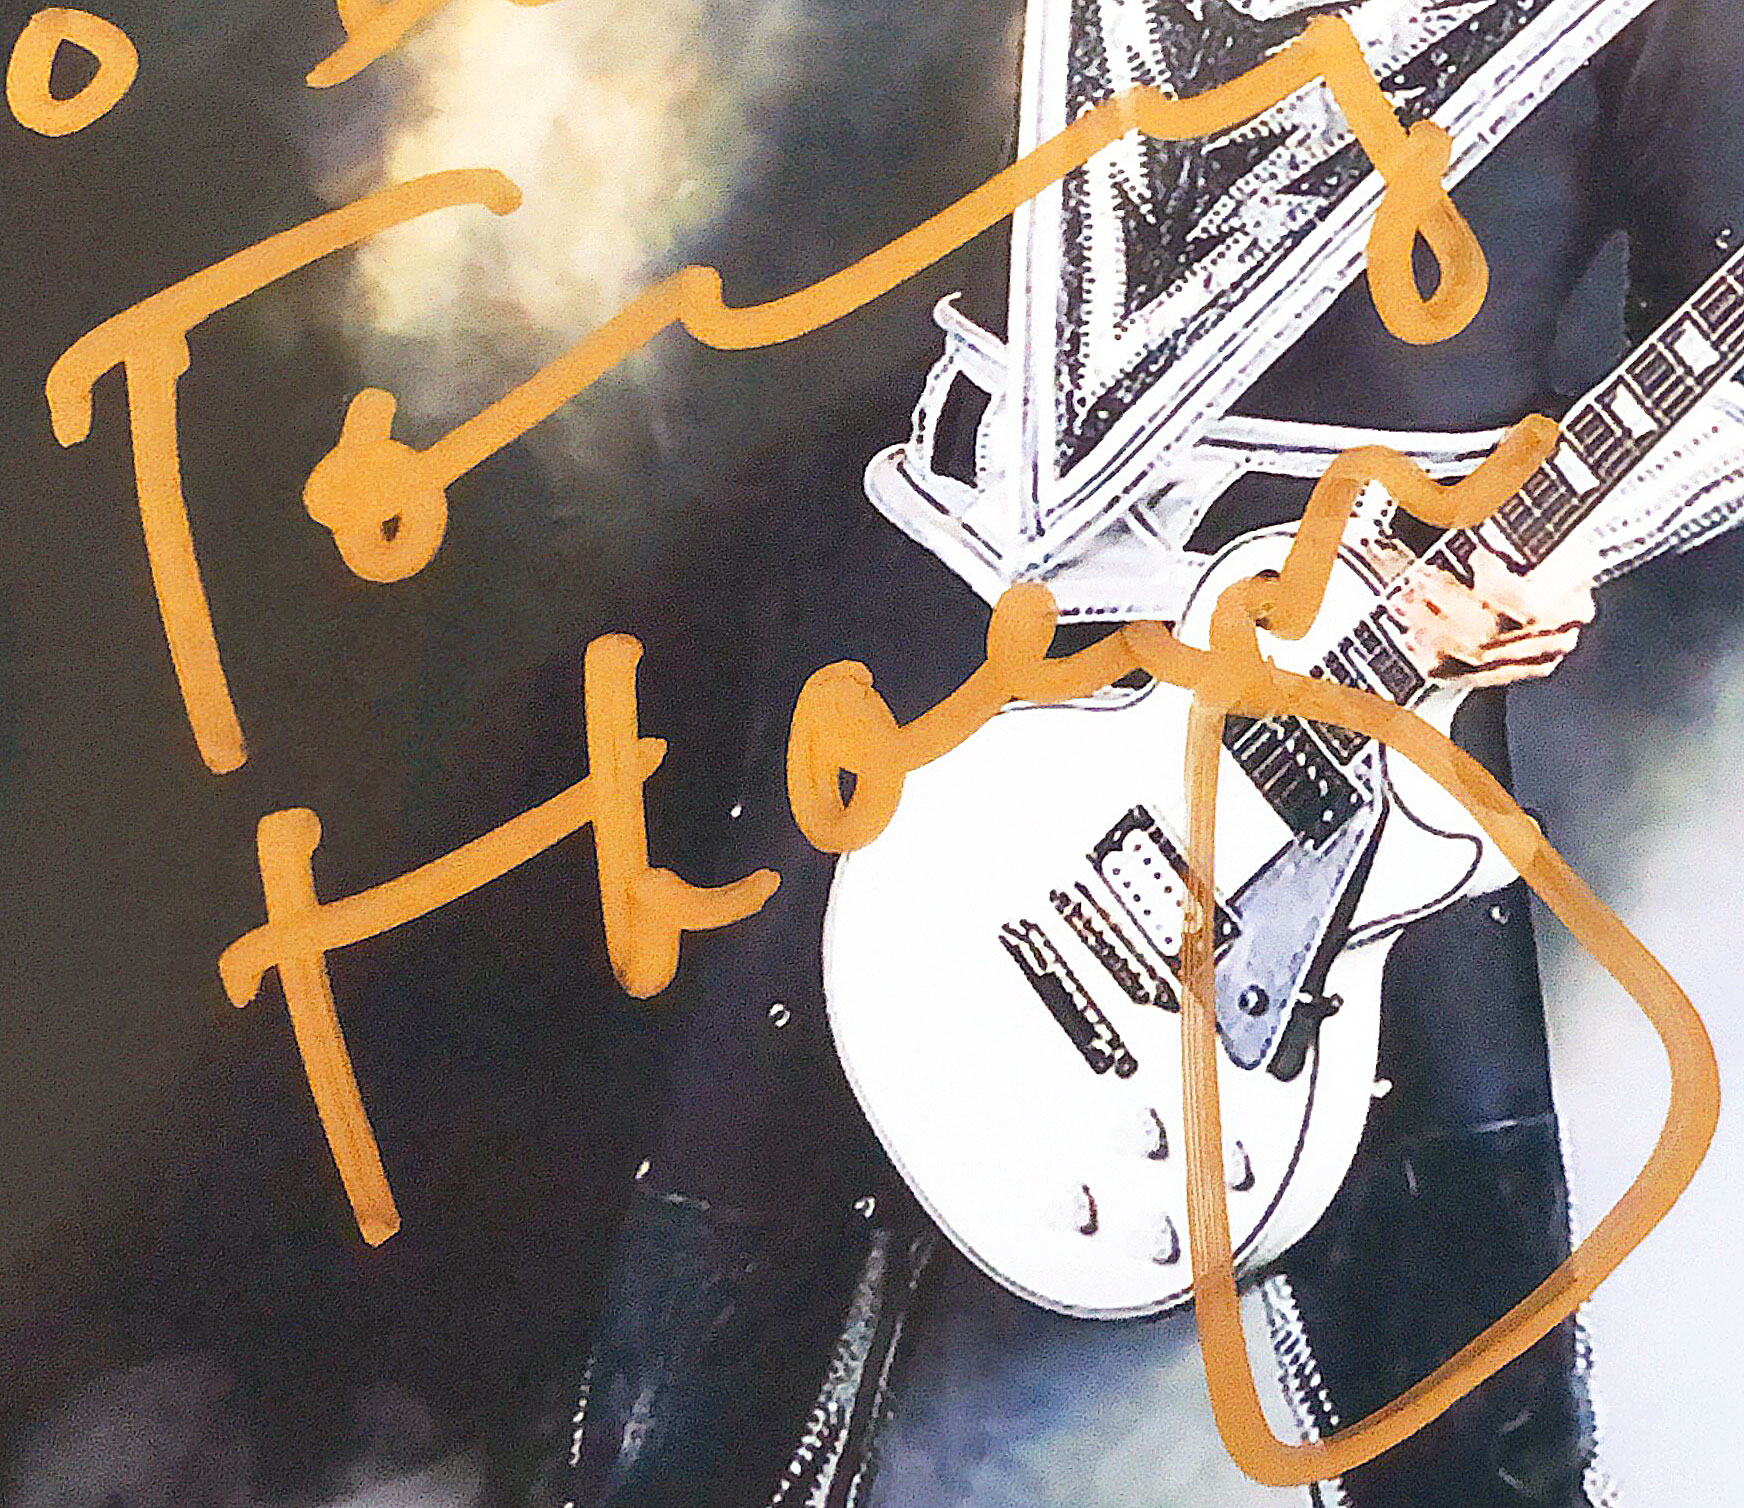 Tommy Thayer Lead Guitar Autograph by Mail